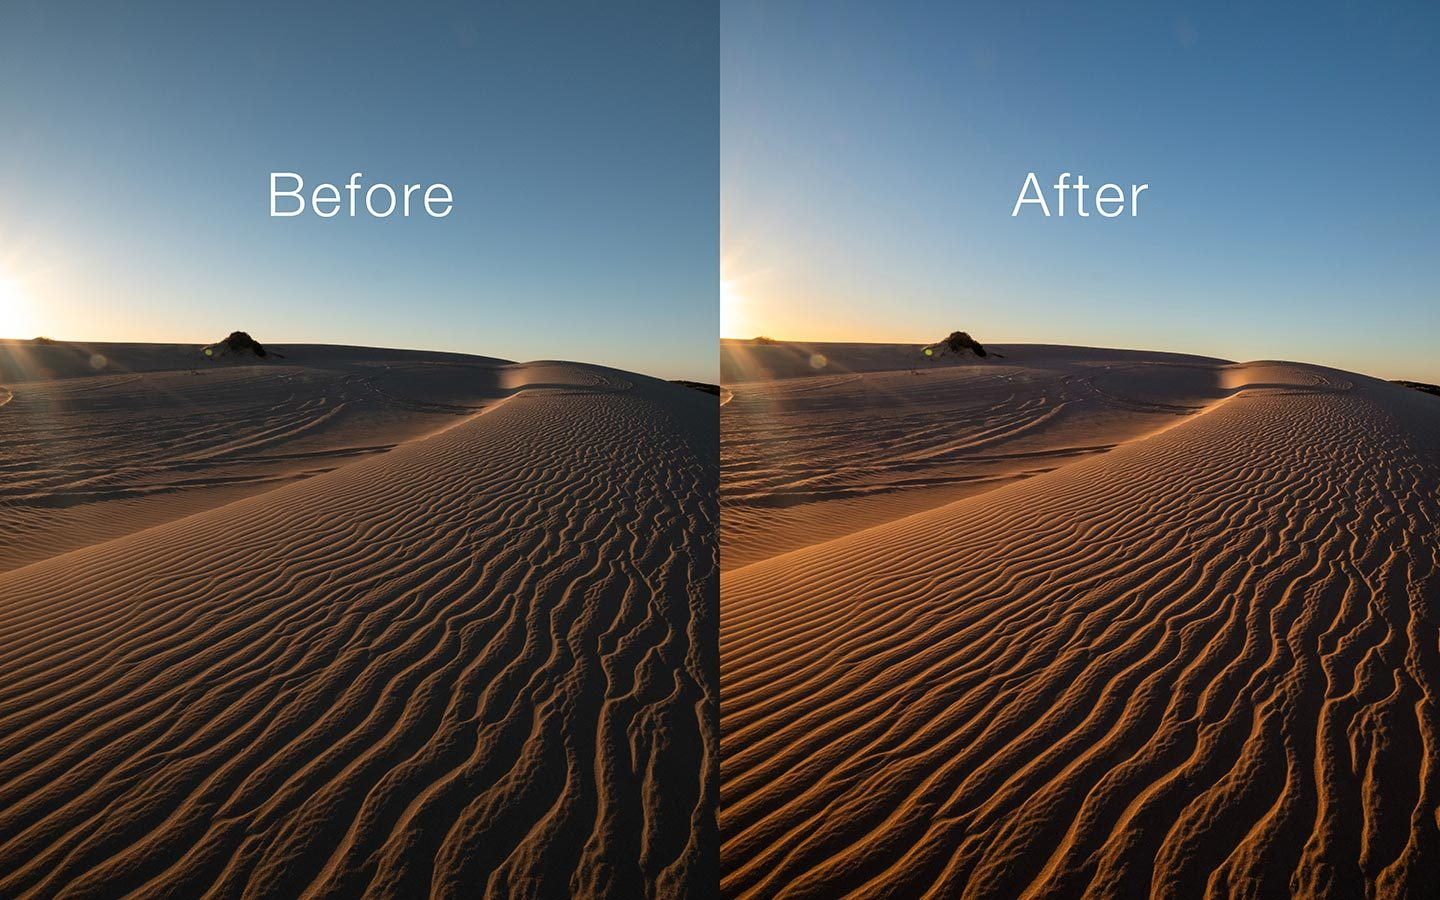 A before and after comparison of the landscape preset.